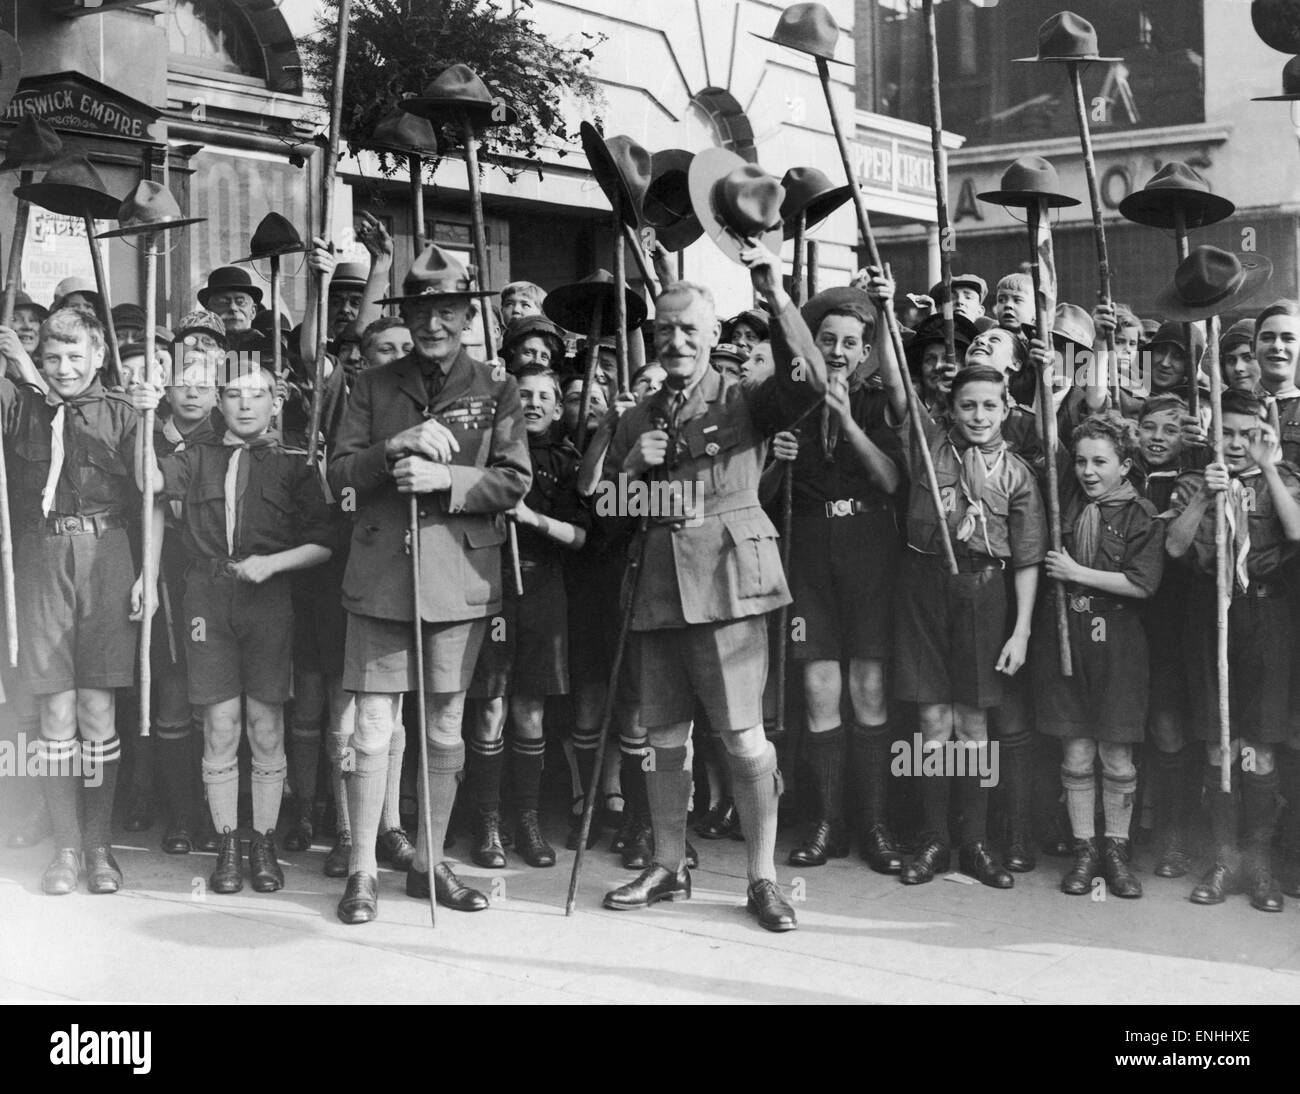 Lord Robert Baden-Powell, founder of the Scout Movement, inspoecting a large group of boy scouts outside Chiswick - Stock Image